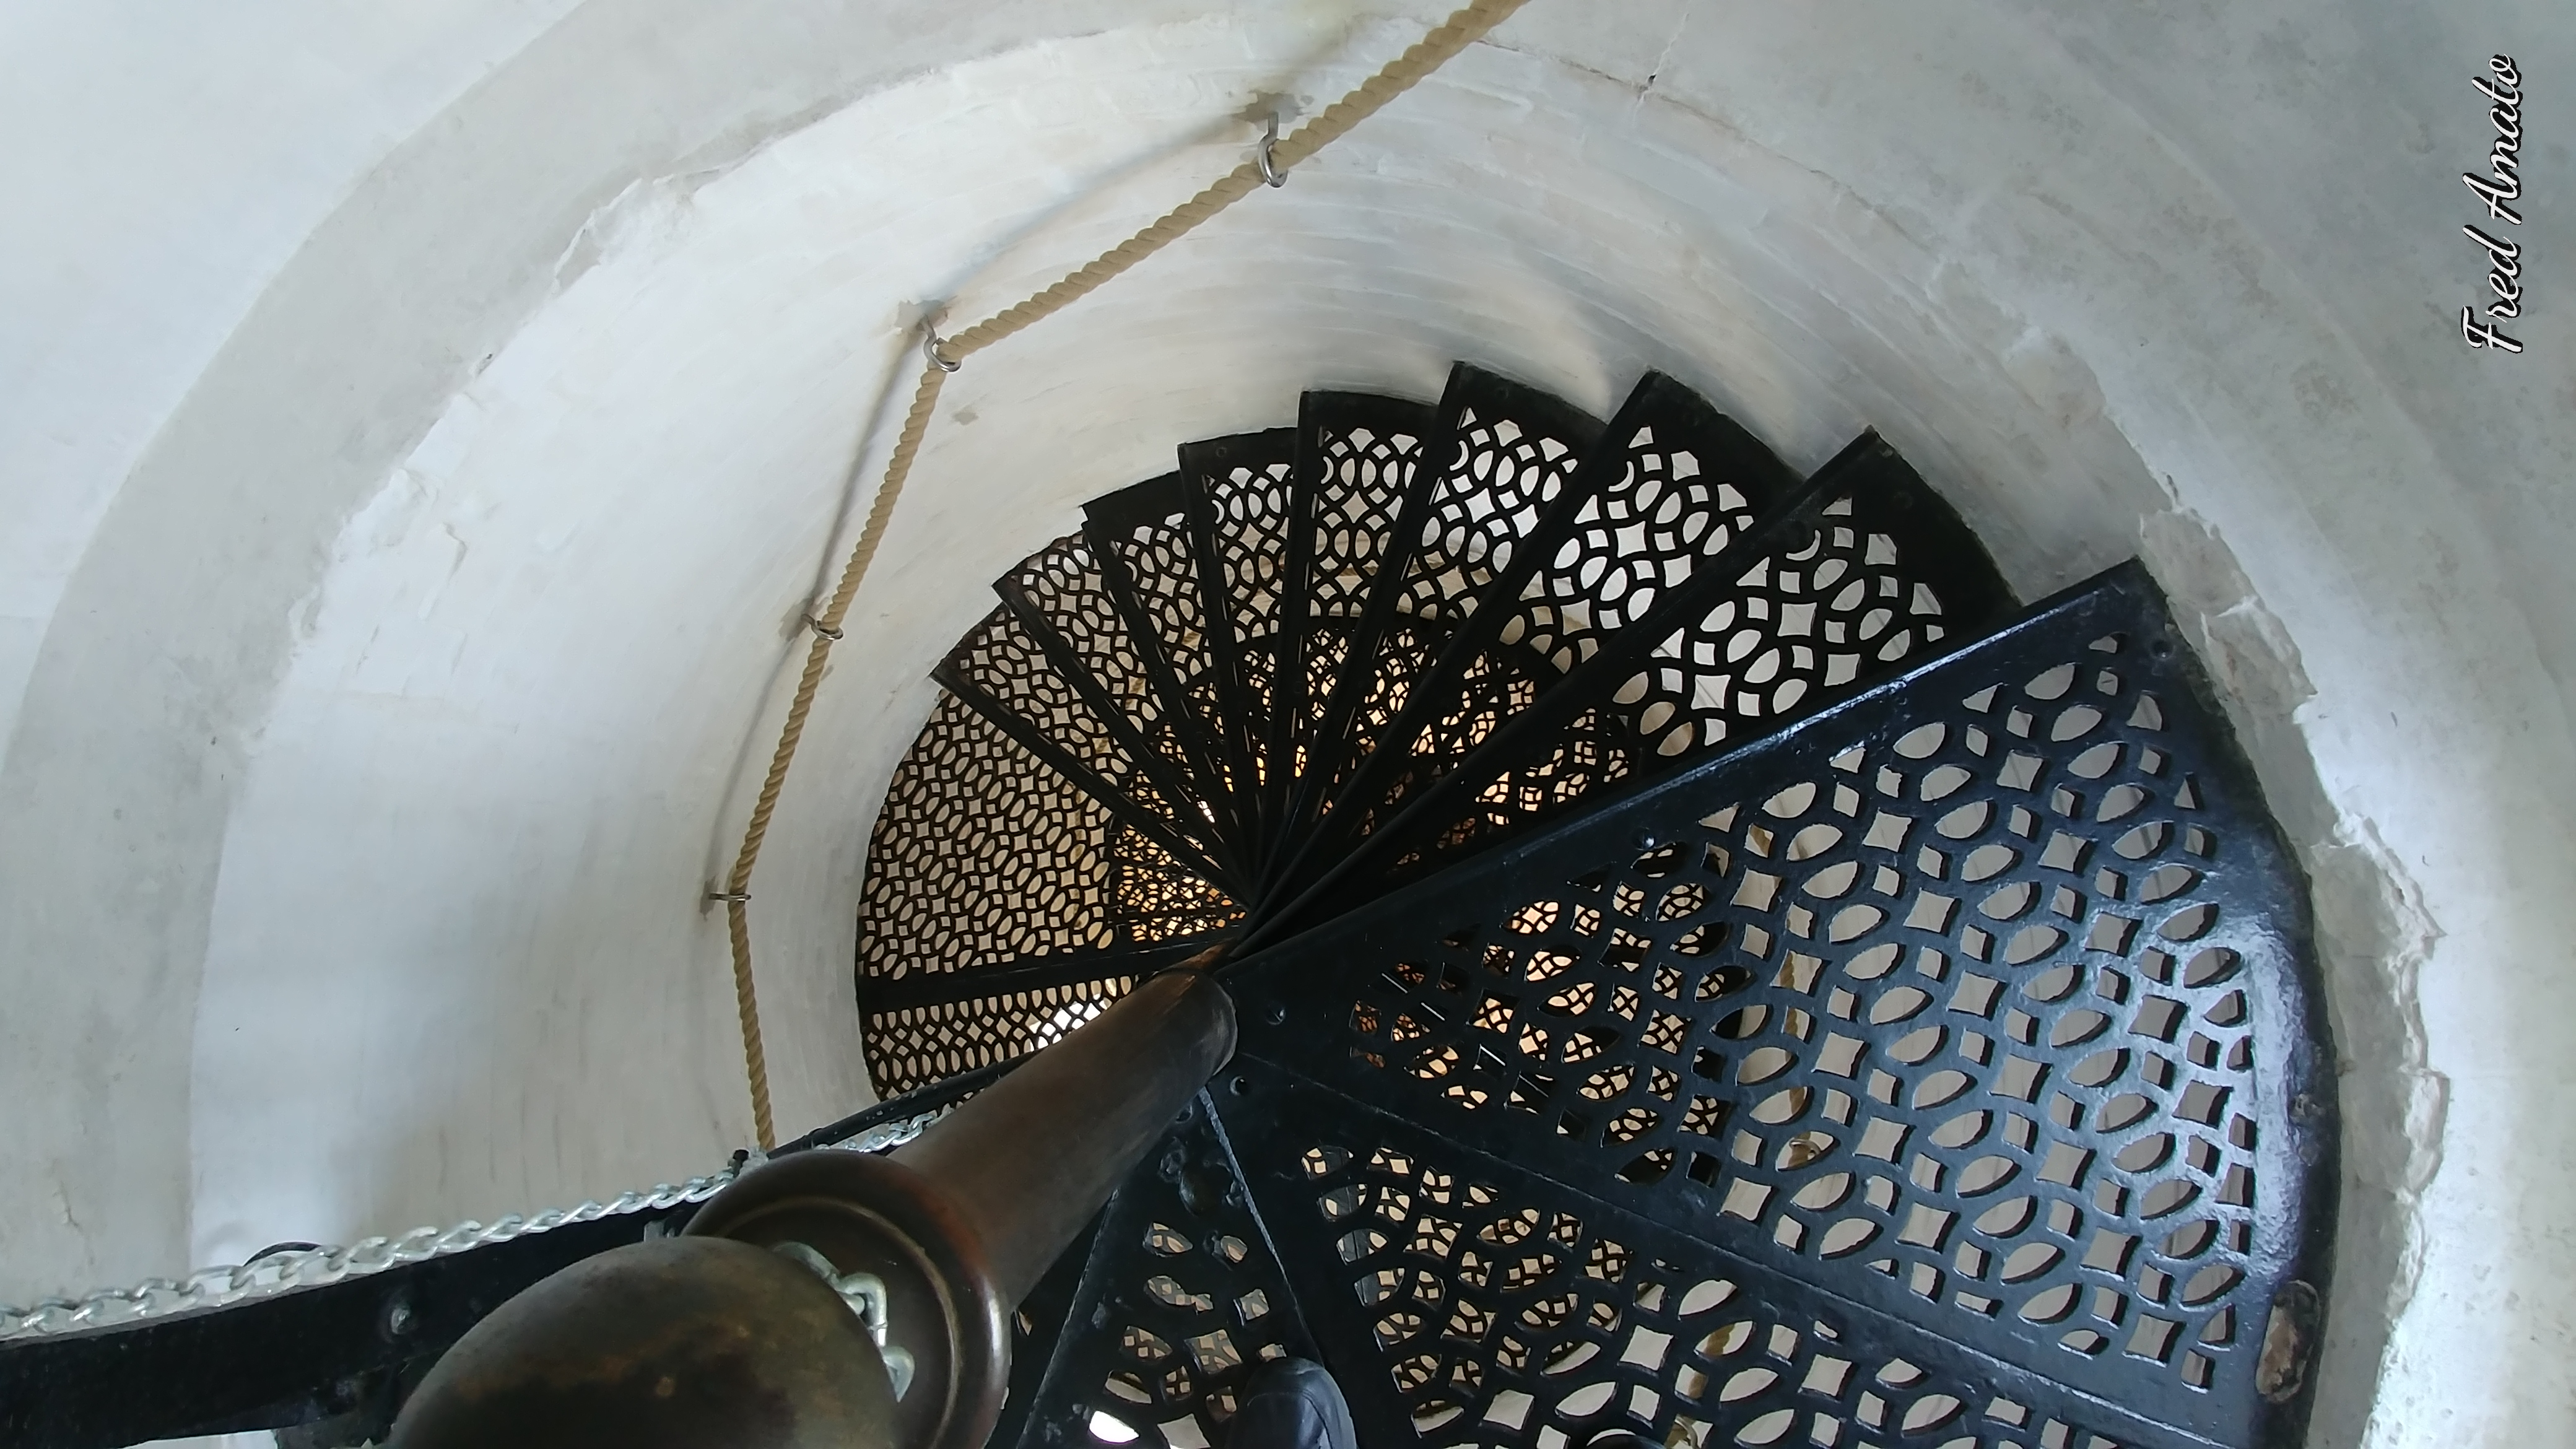 Looking Down the Stairwell